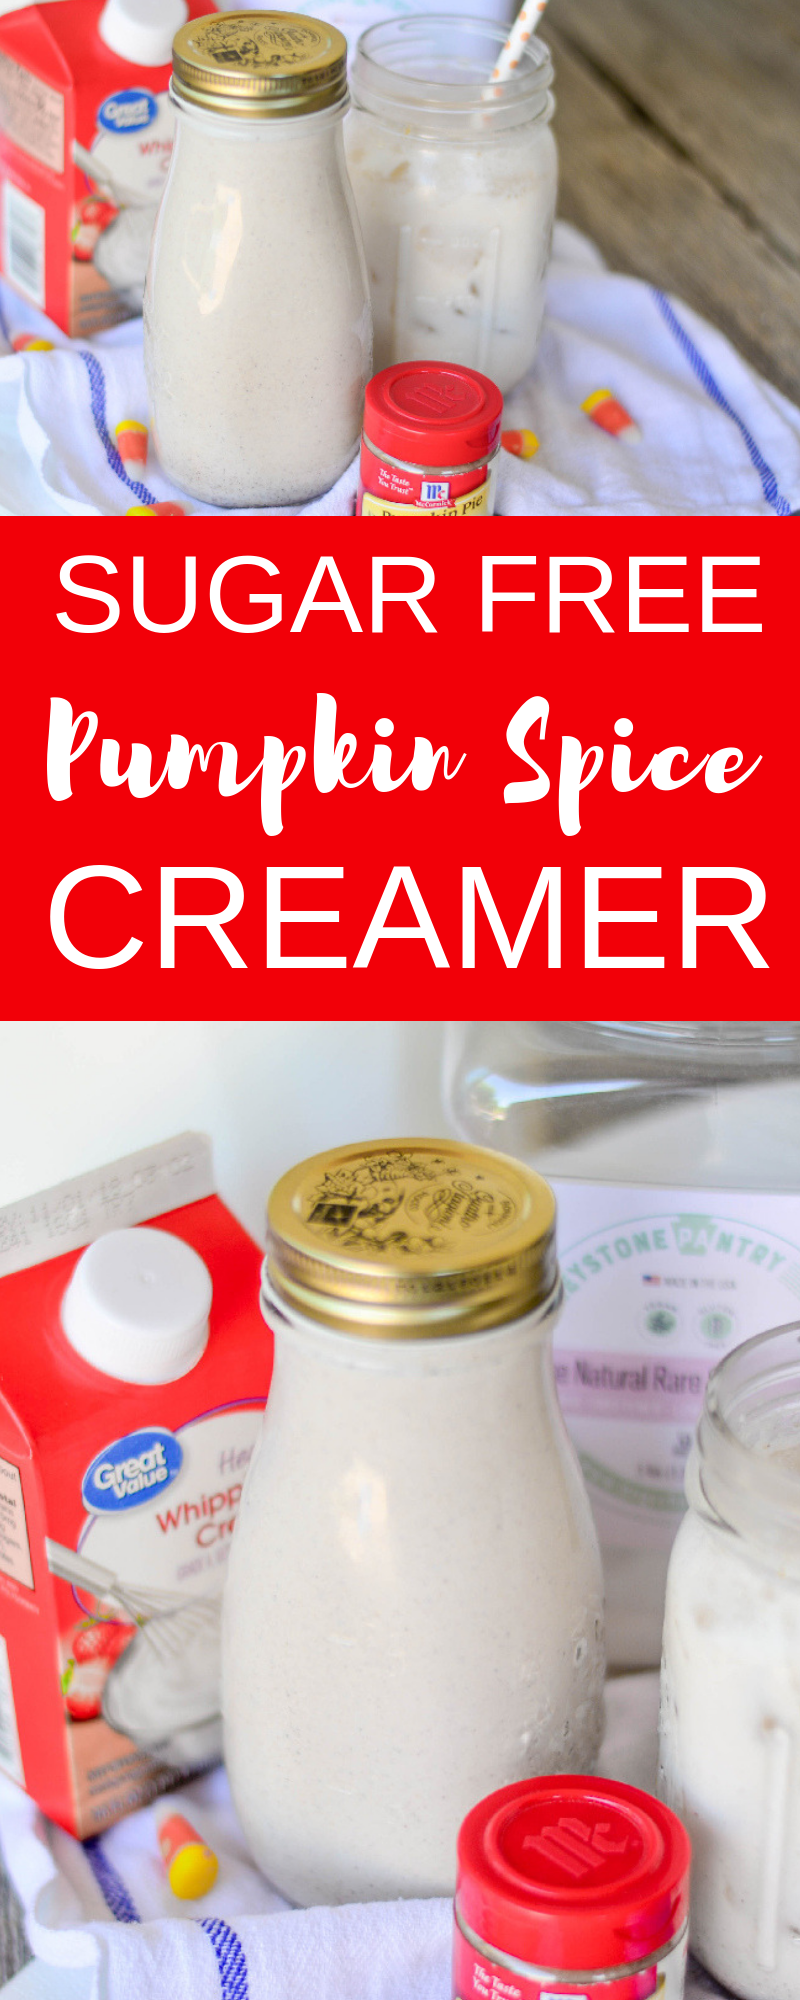 Sugar Free Pumpkin Spice Creamer collage